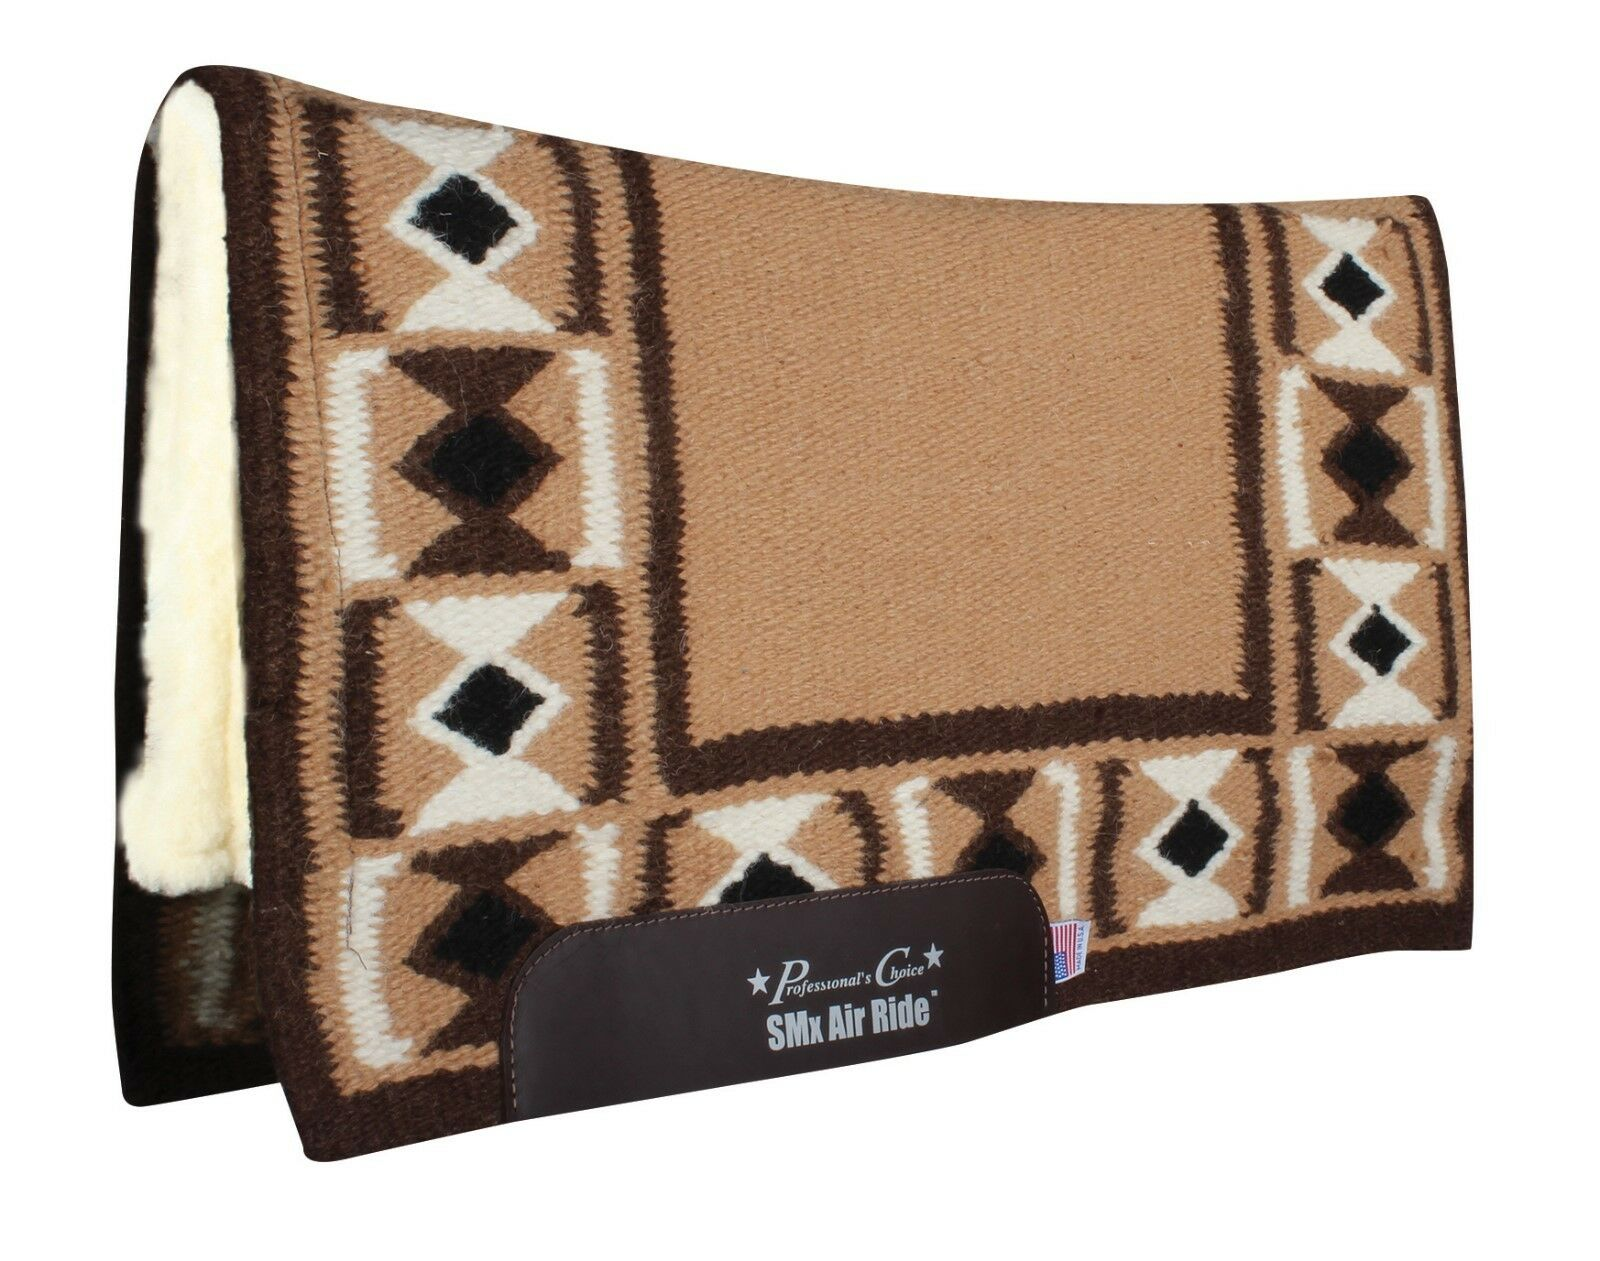 Professional's Choice HOURGLASS Tan Chocolate Air Ride Western Saddle Pad Pro